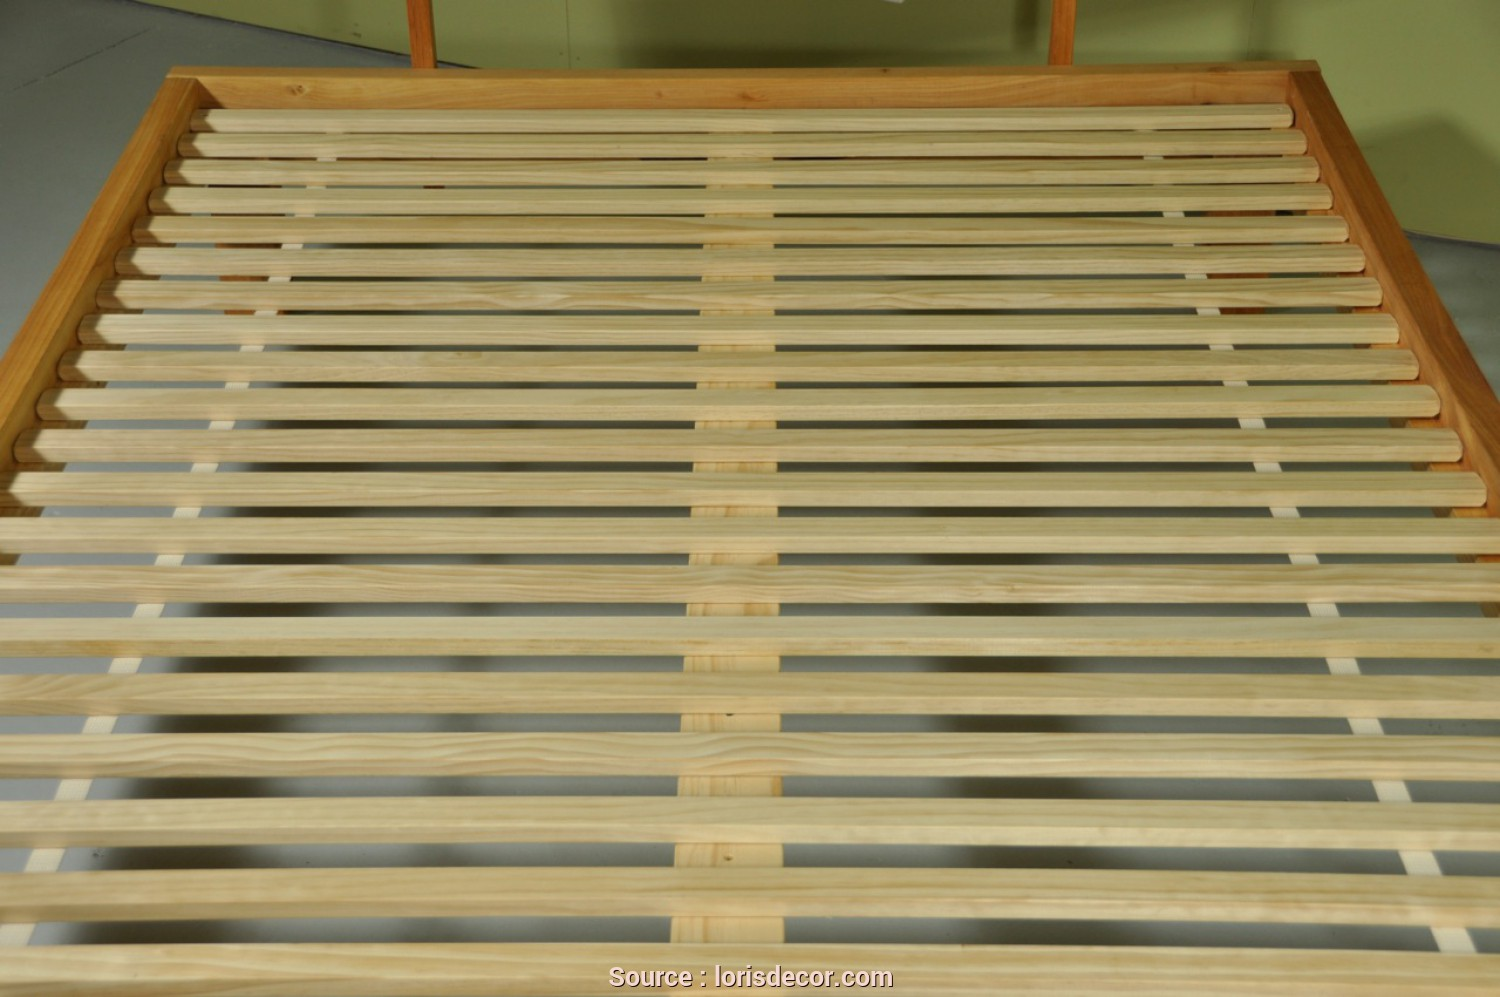 Ikea Futon Slat Replacement, Casuale Ikea Futon Slats, Loris Decoration